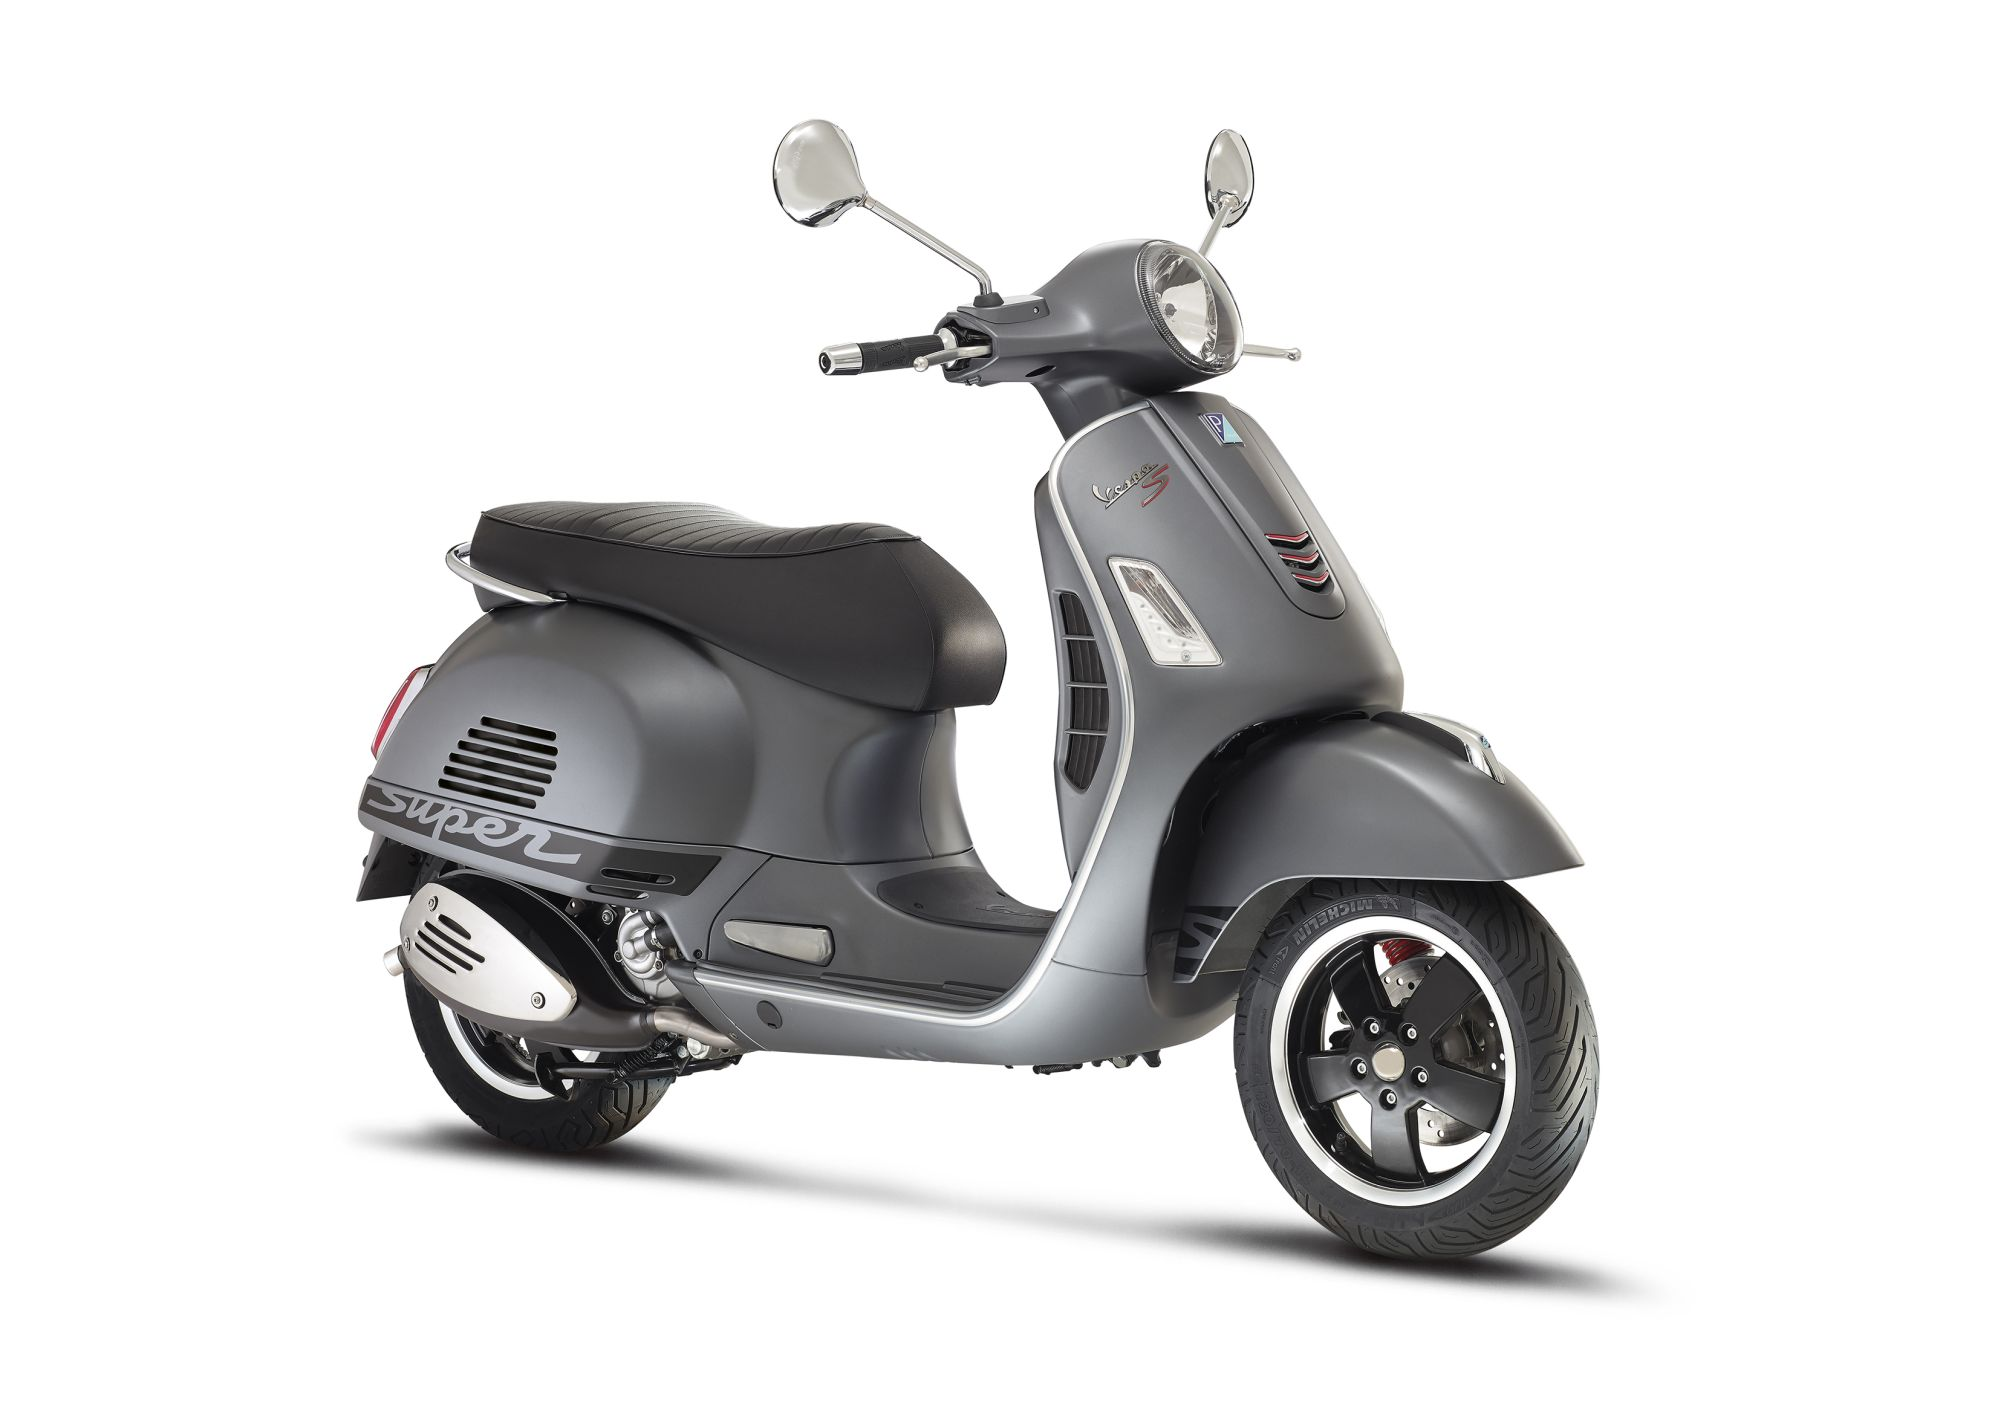 vespa gts 125 i e super sport all technical data of the. Black Bedroom Furniture Sets. Home Design Ideas